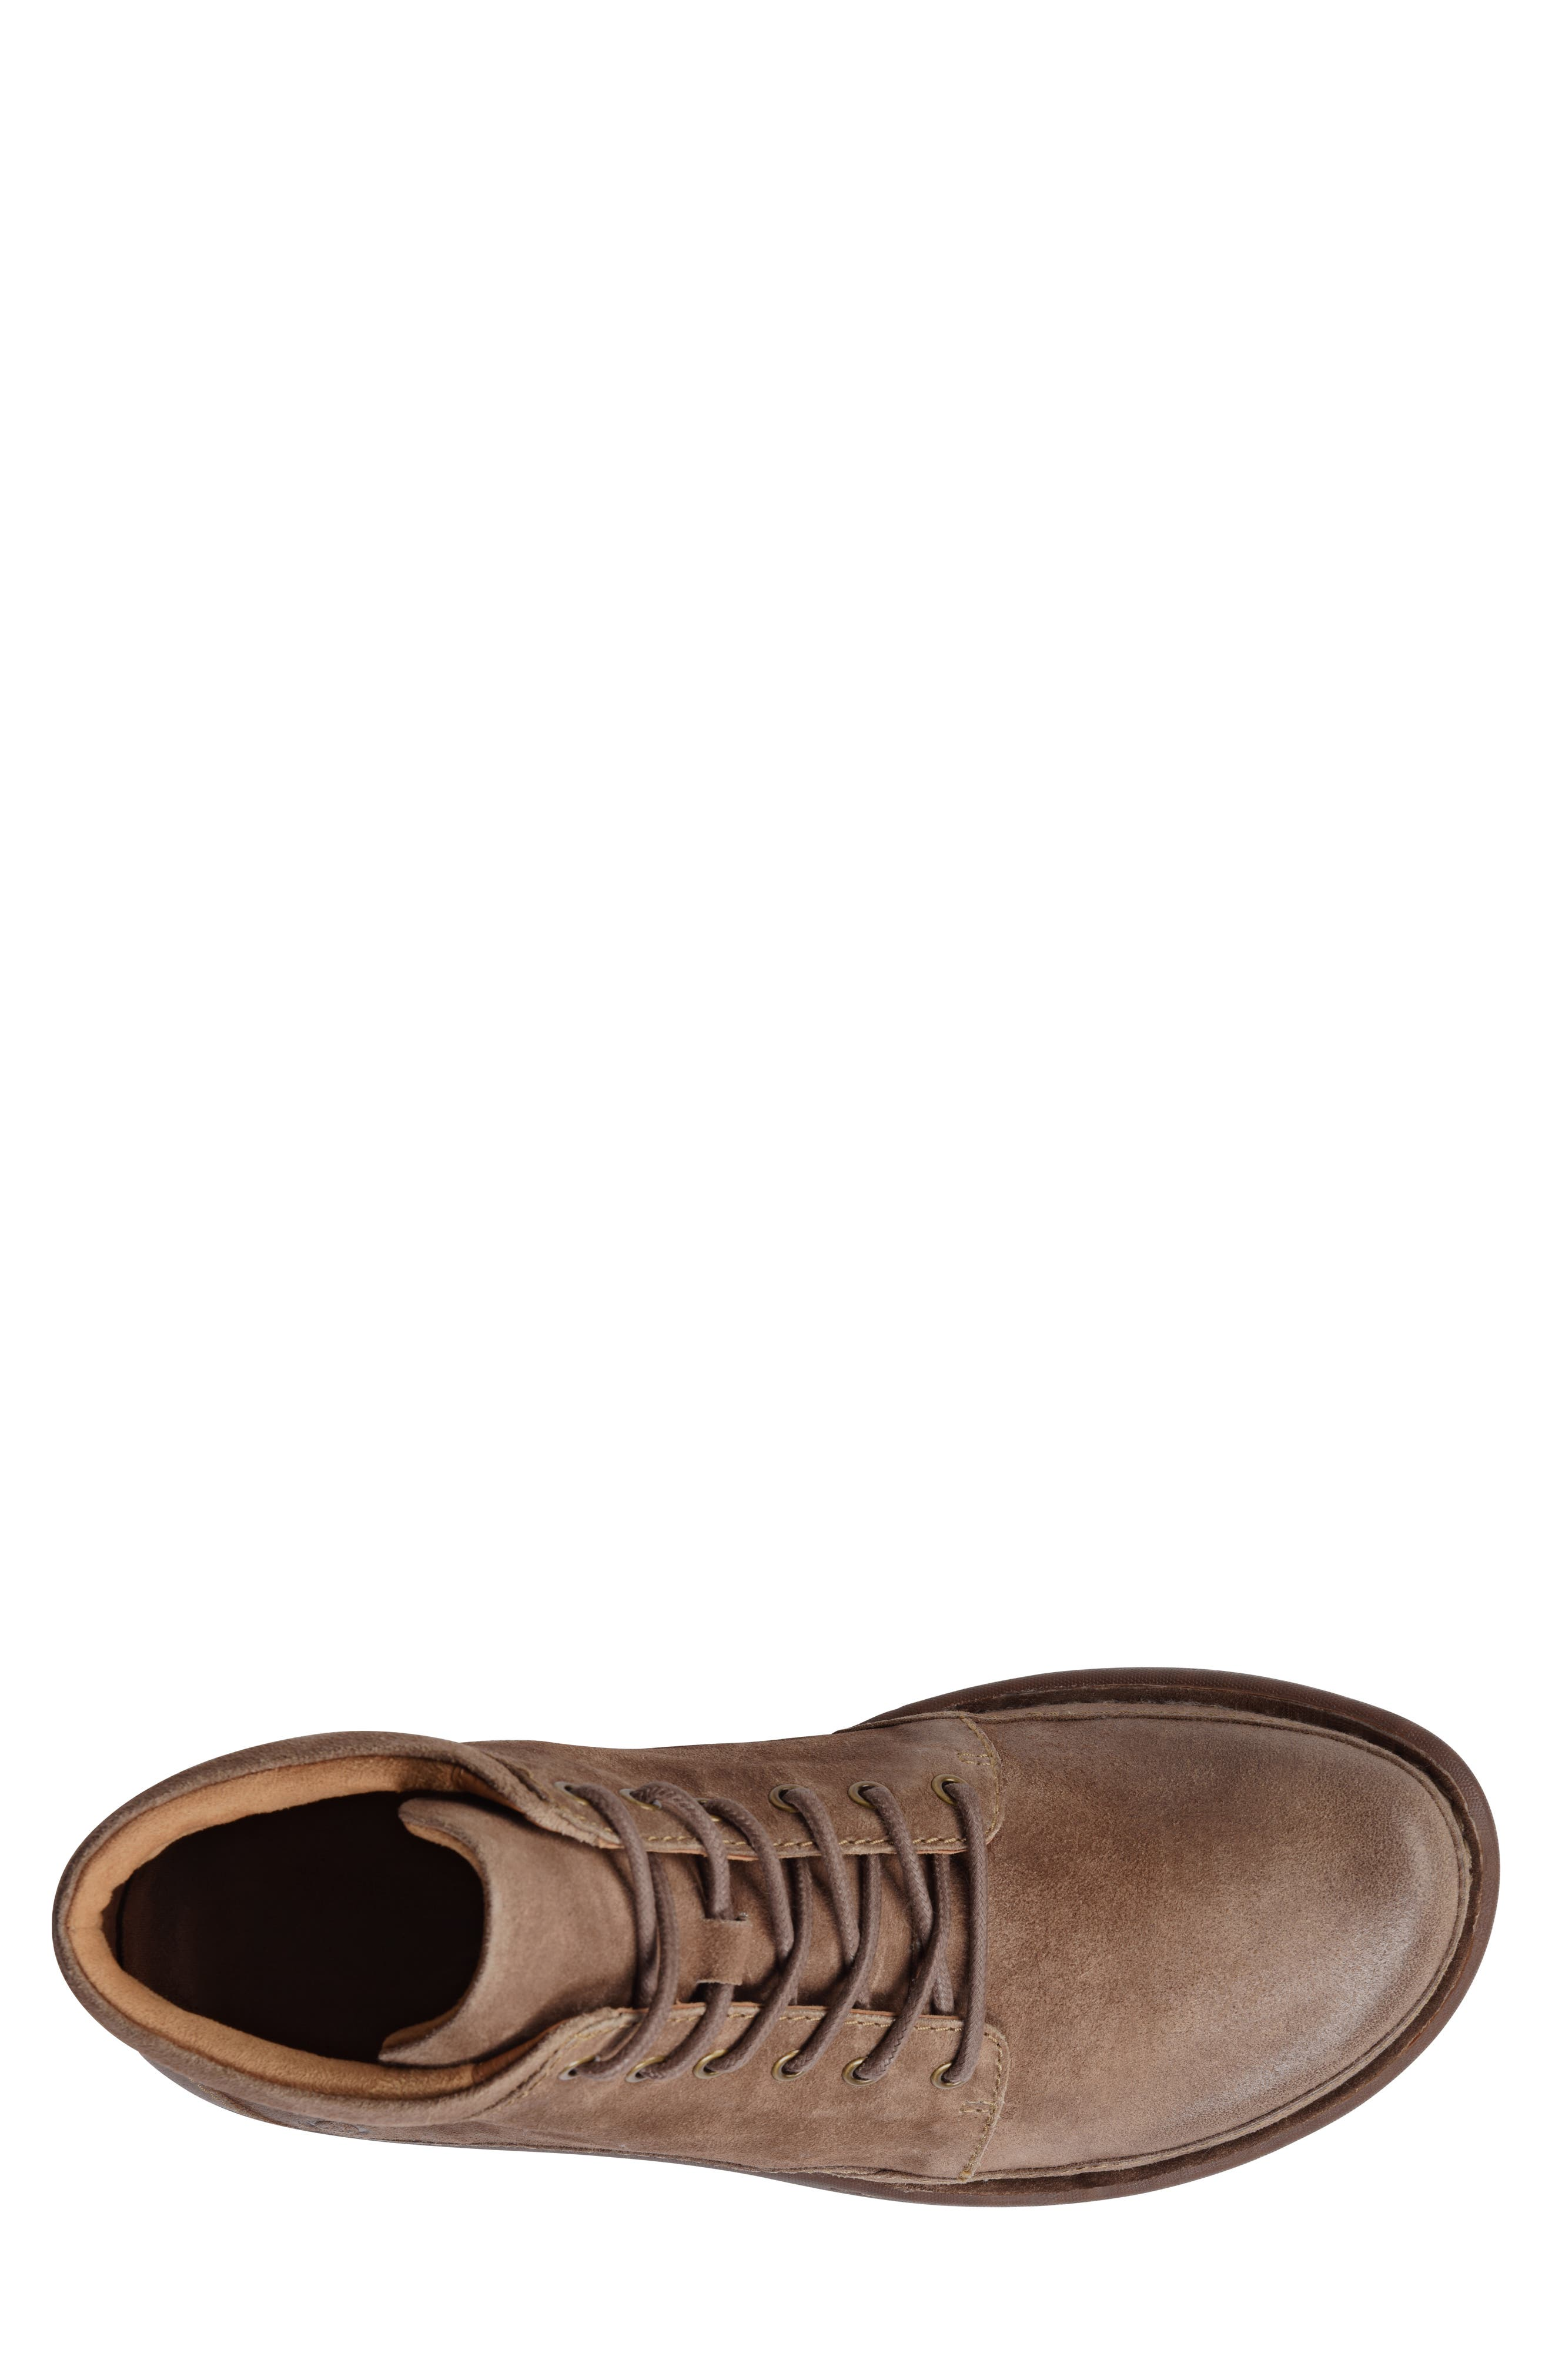 Nigel Low Boot,                             Alternate thumbnail 5, color,                             TAUPE LEATHER